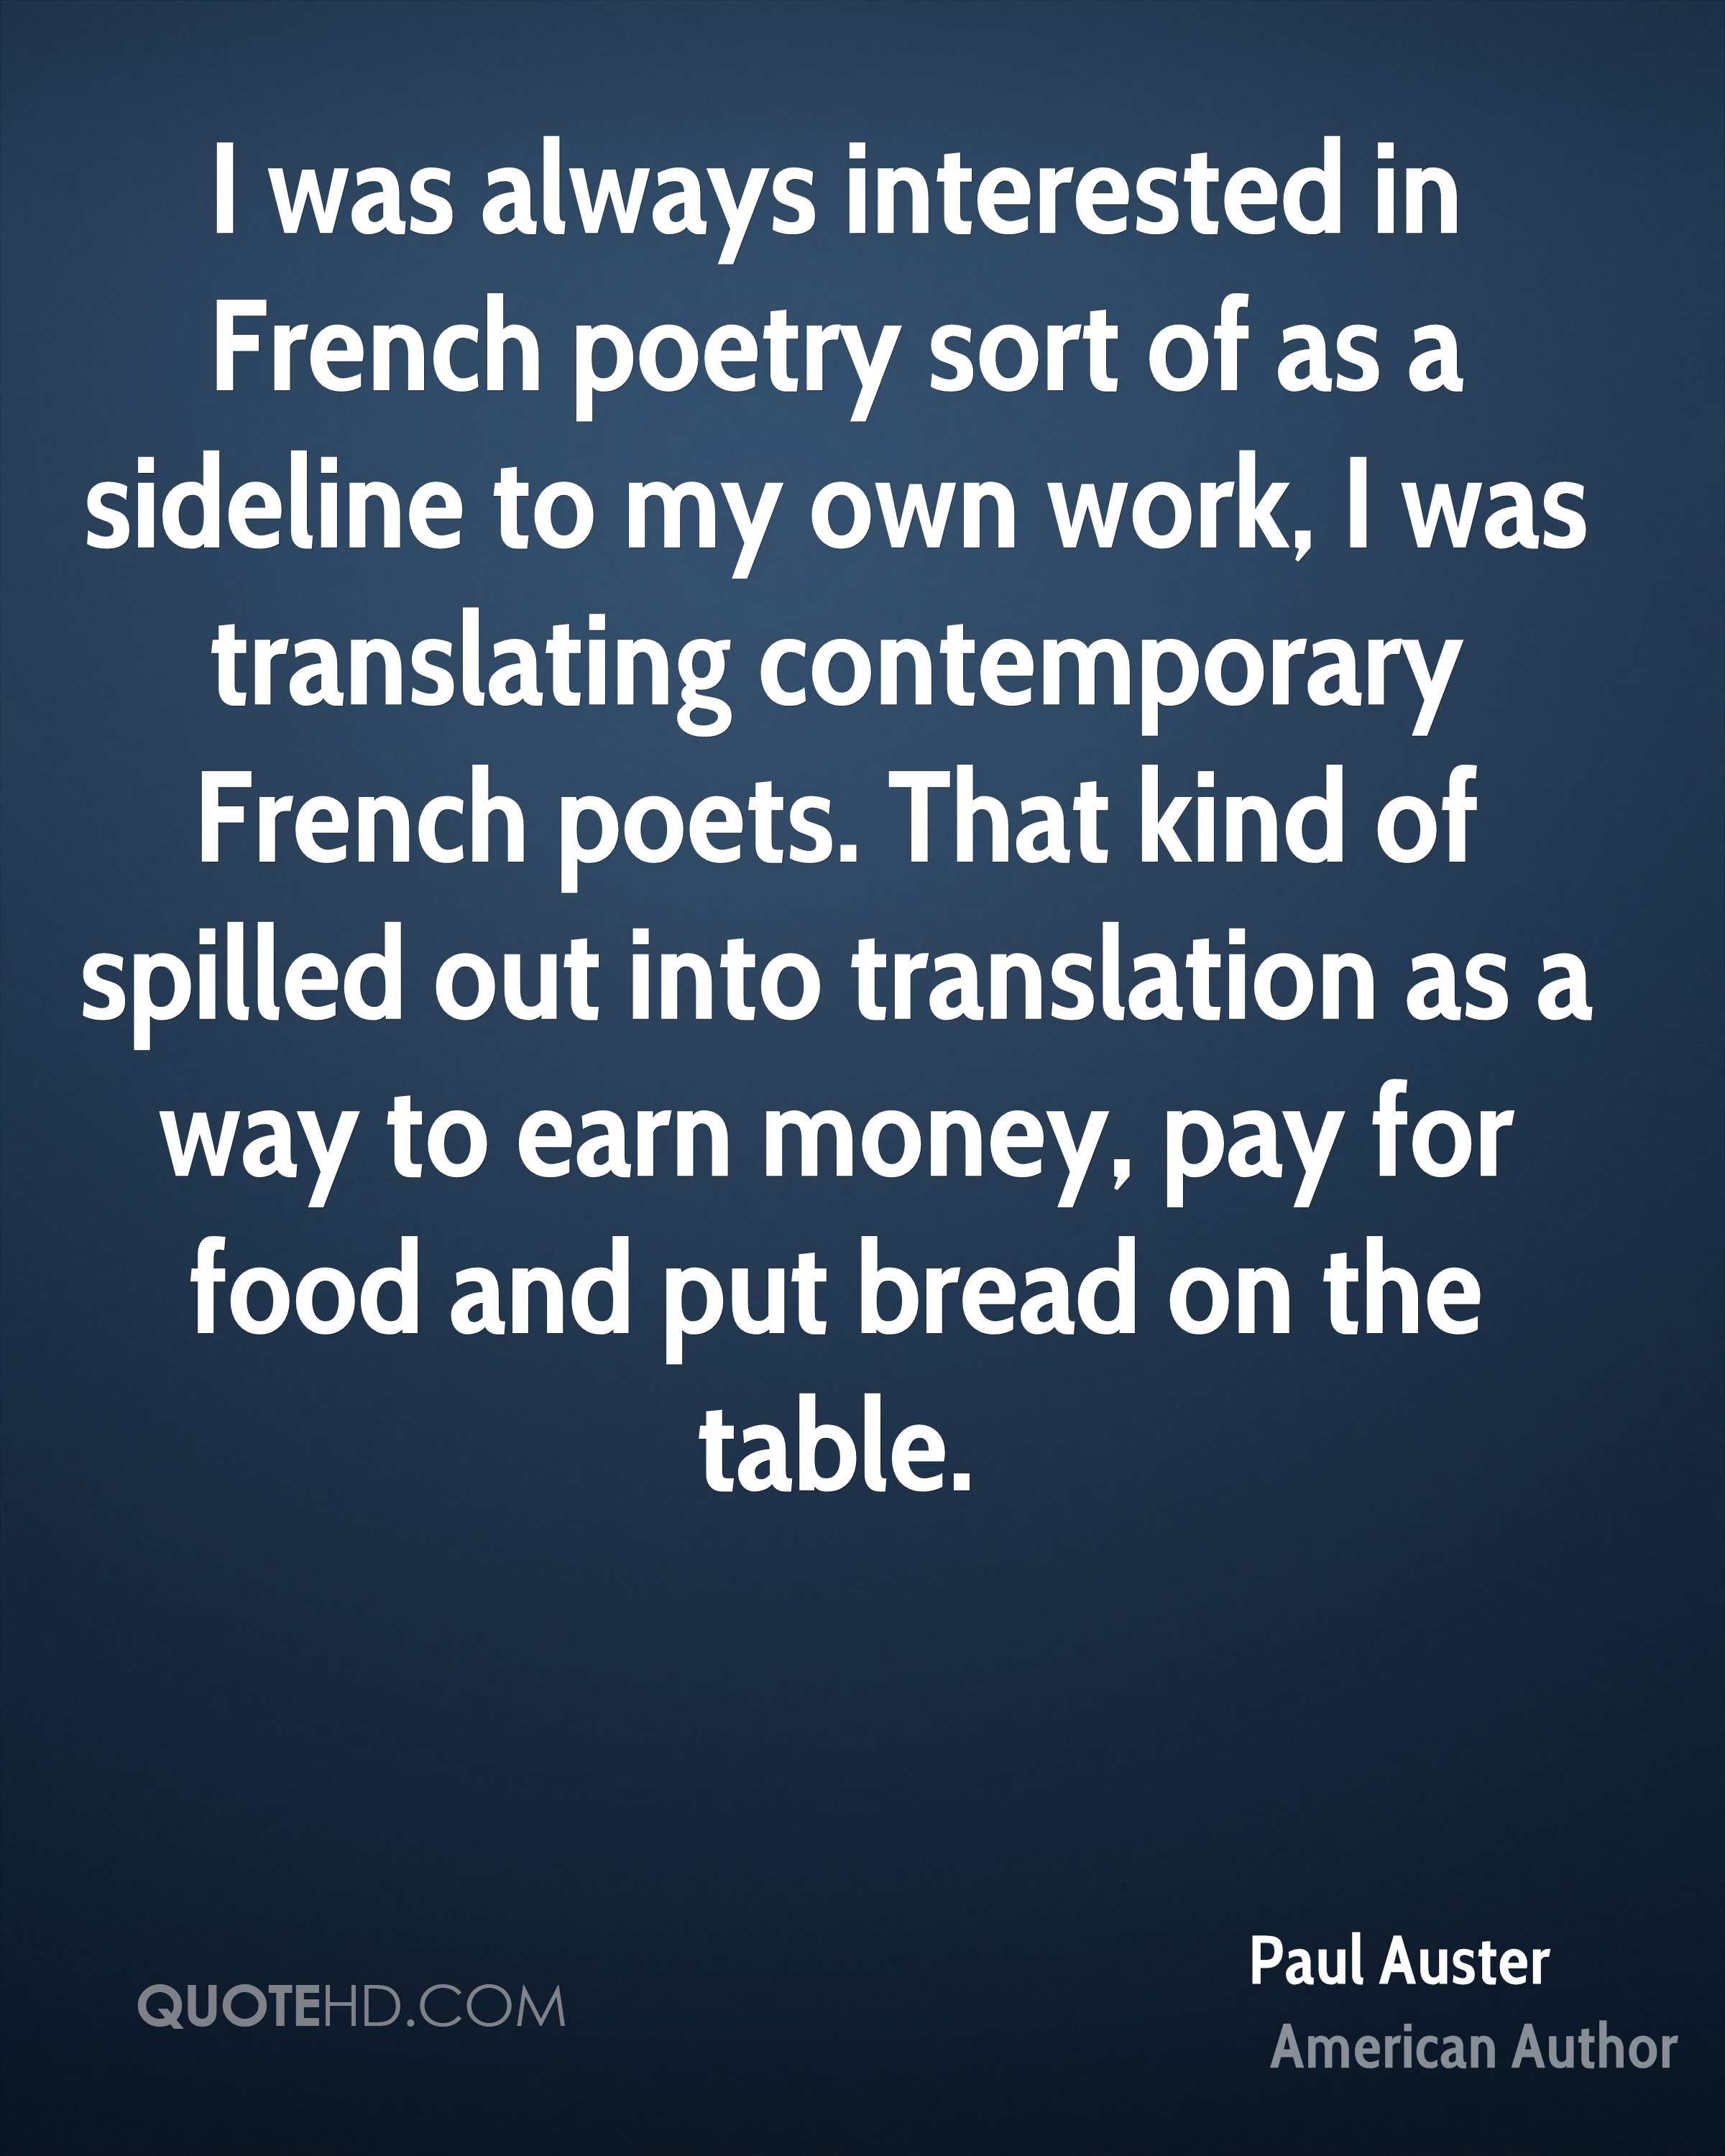 Paul Auster Poetry Quotes | QuoteHD